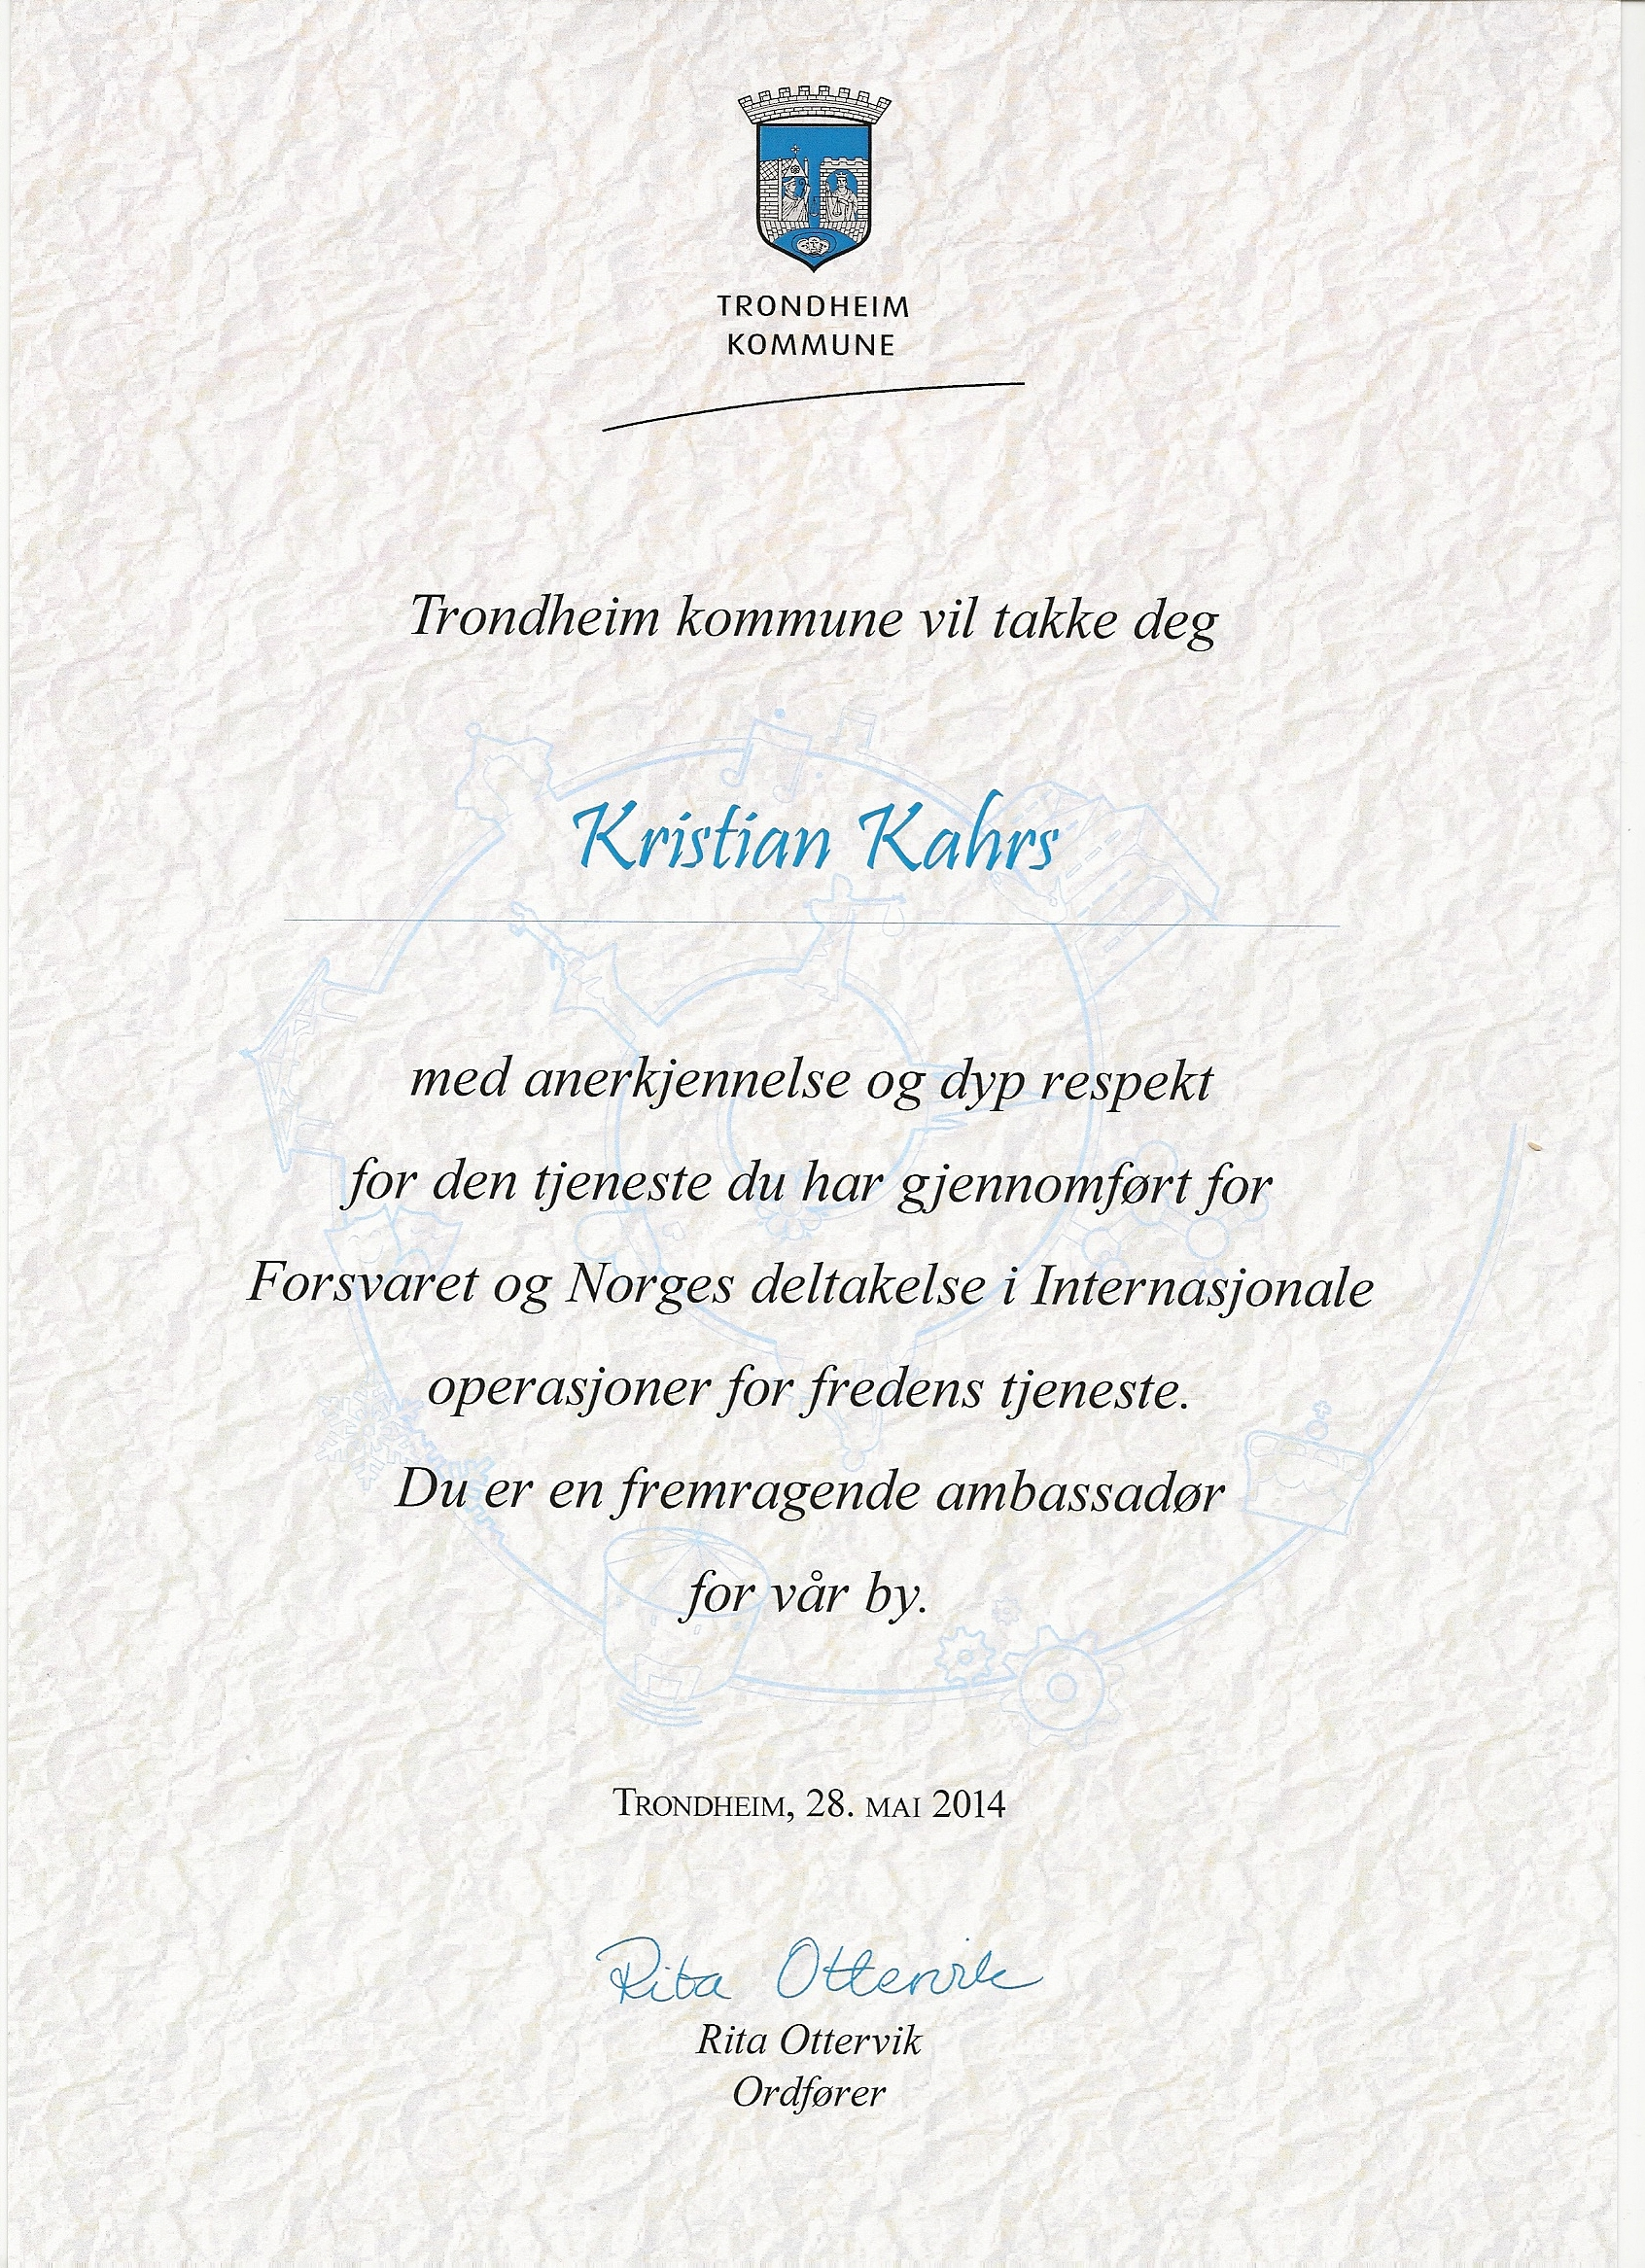 Distinction for army service in kosovo sorry serbia english translation the city of trondheim would like to thank you kristian kahrs spiritdancerdesigns Images